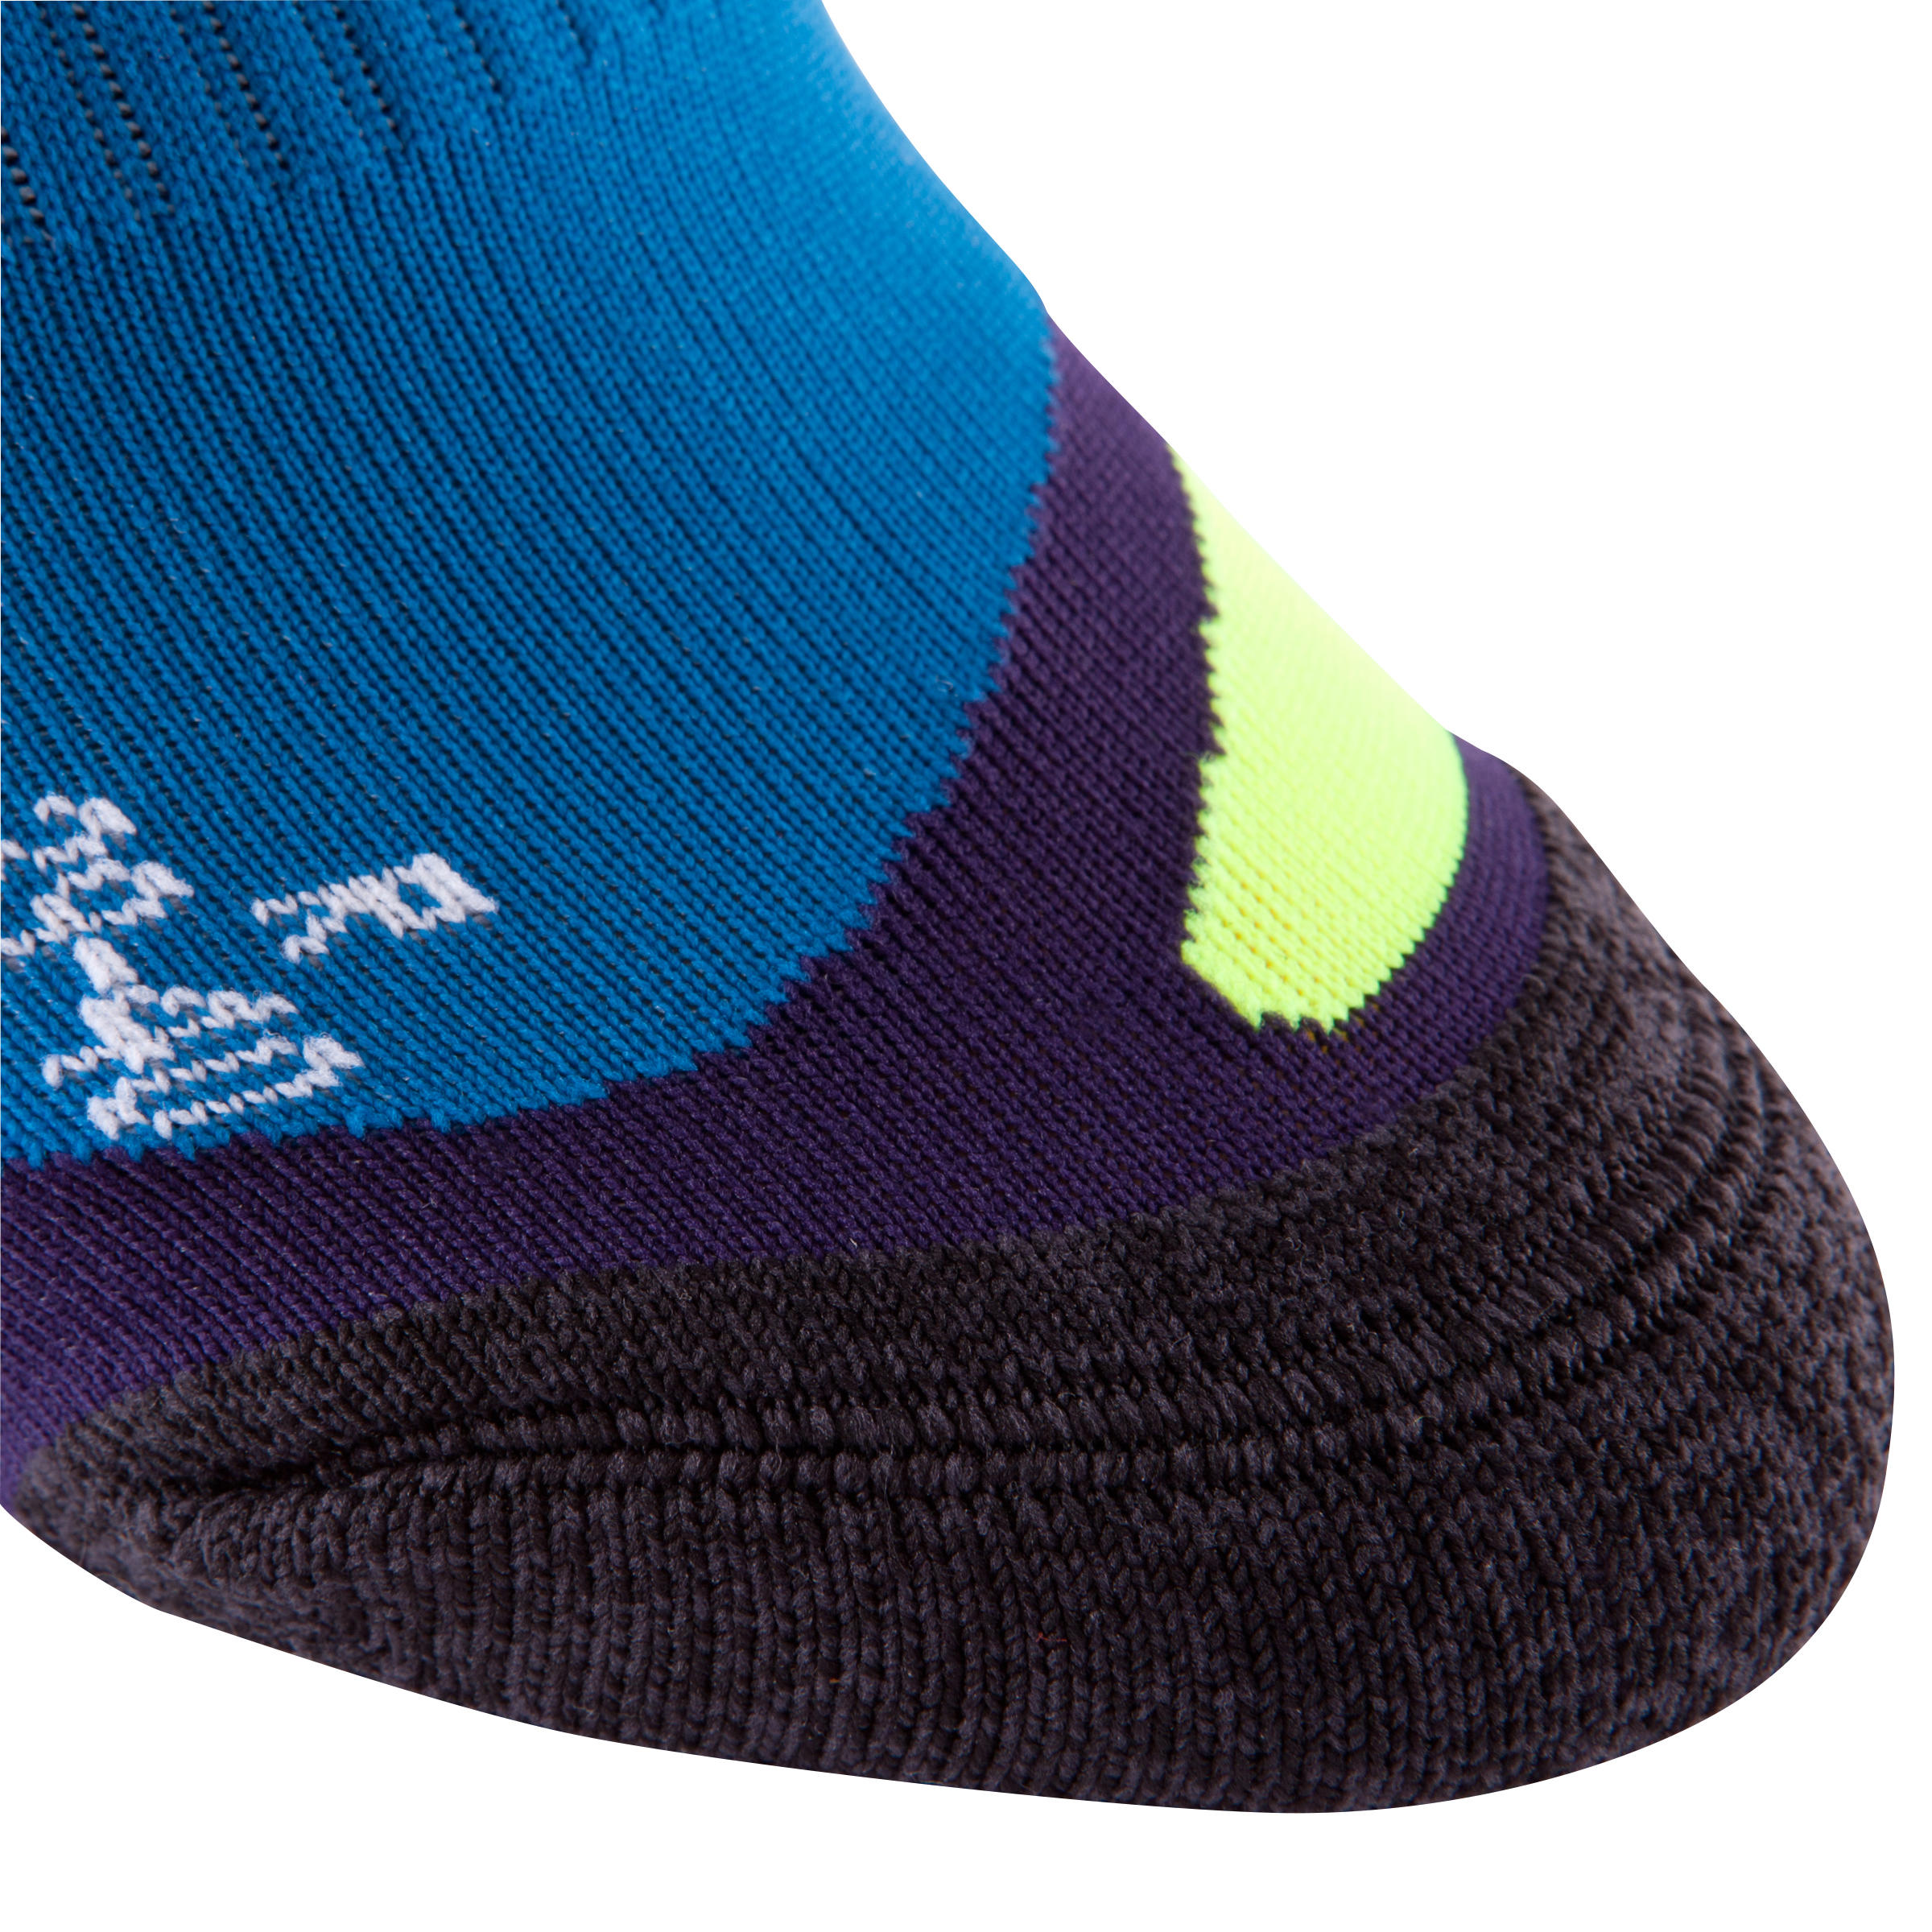 Kiprun Strap Running Socks - Blue Purple